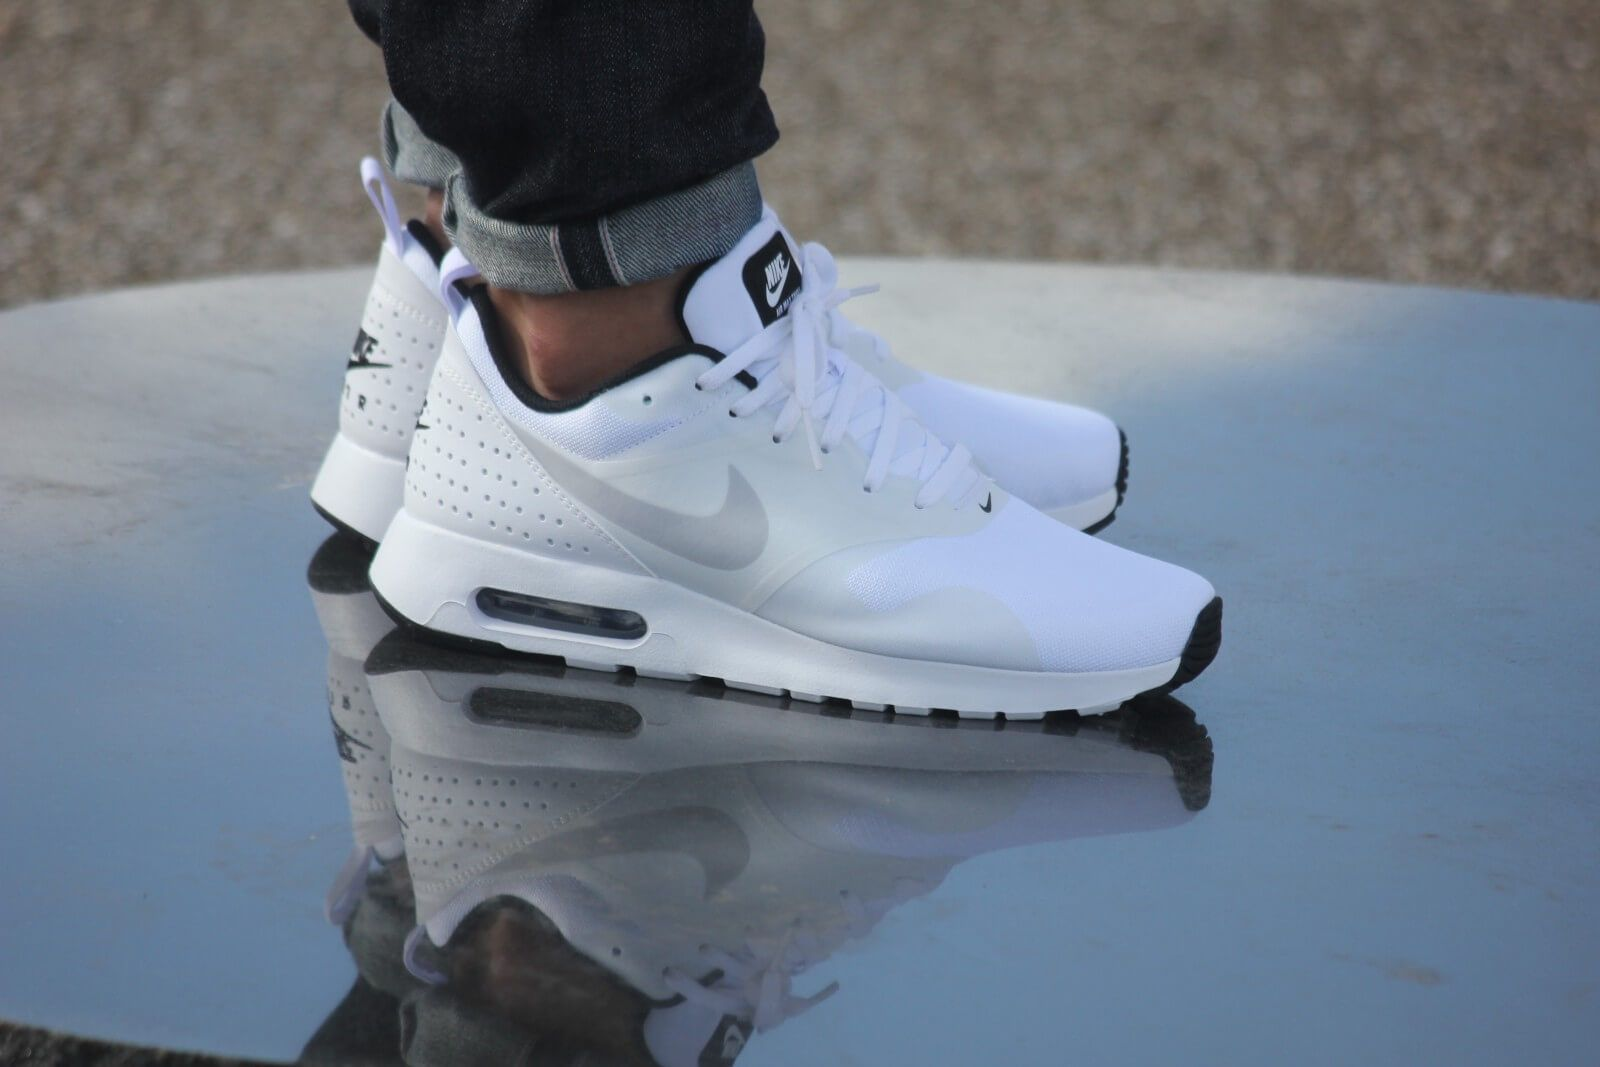 best service 3052d db094 Nike Air Max Tavas White  Pure Platinum Black - 705149-103